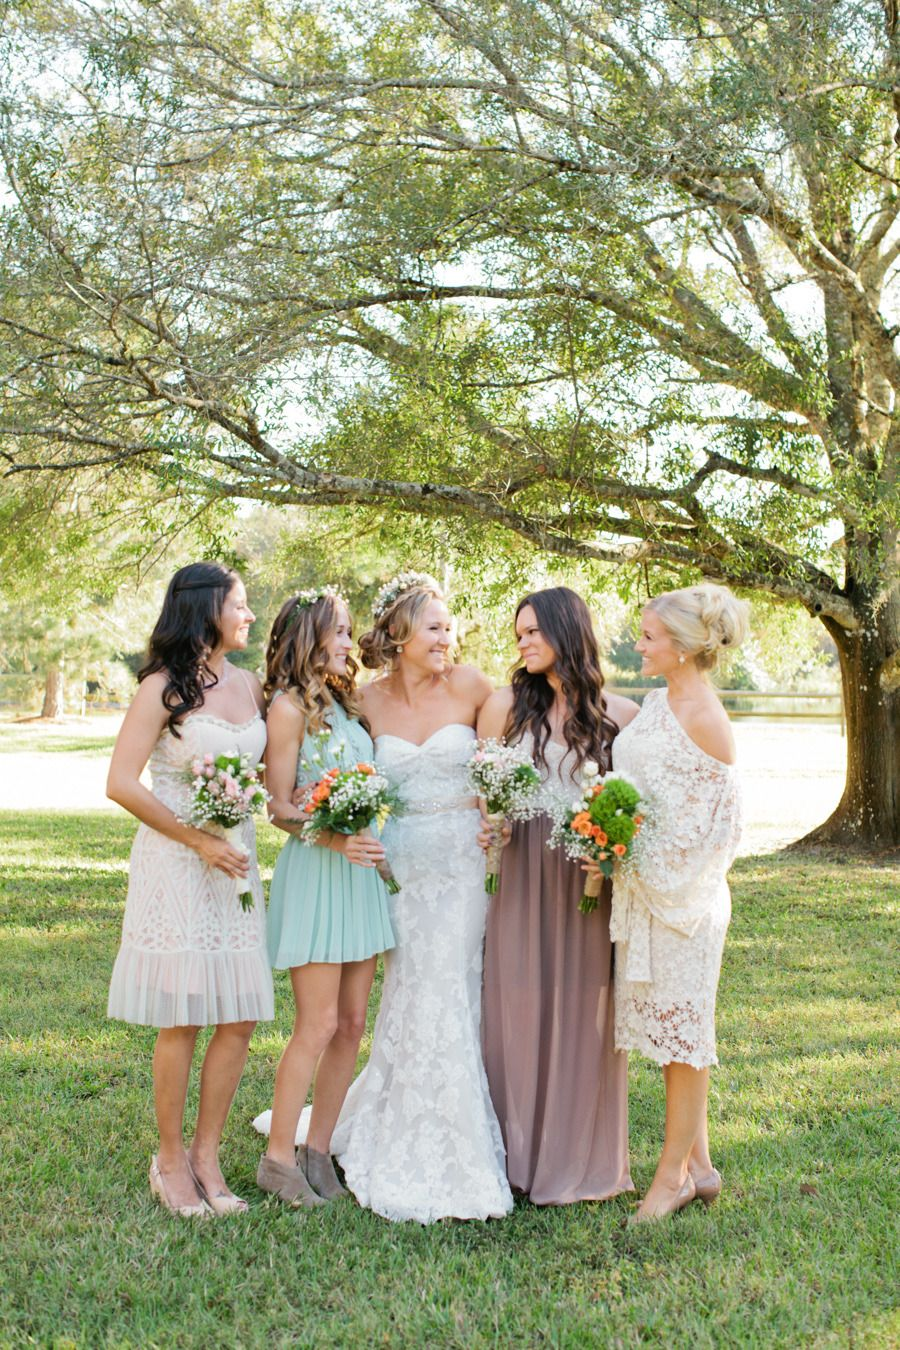 mix-and-match #bridesmaids dresses | Photography: Chelsey Boatwright Photography - chelseyboatwright.com  Read More: http://www.stylemepretty.com/2014/04/22/rustic-southern-plantation-wedding/